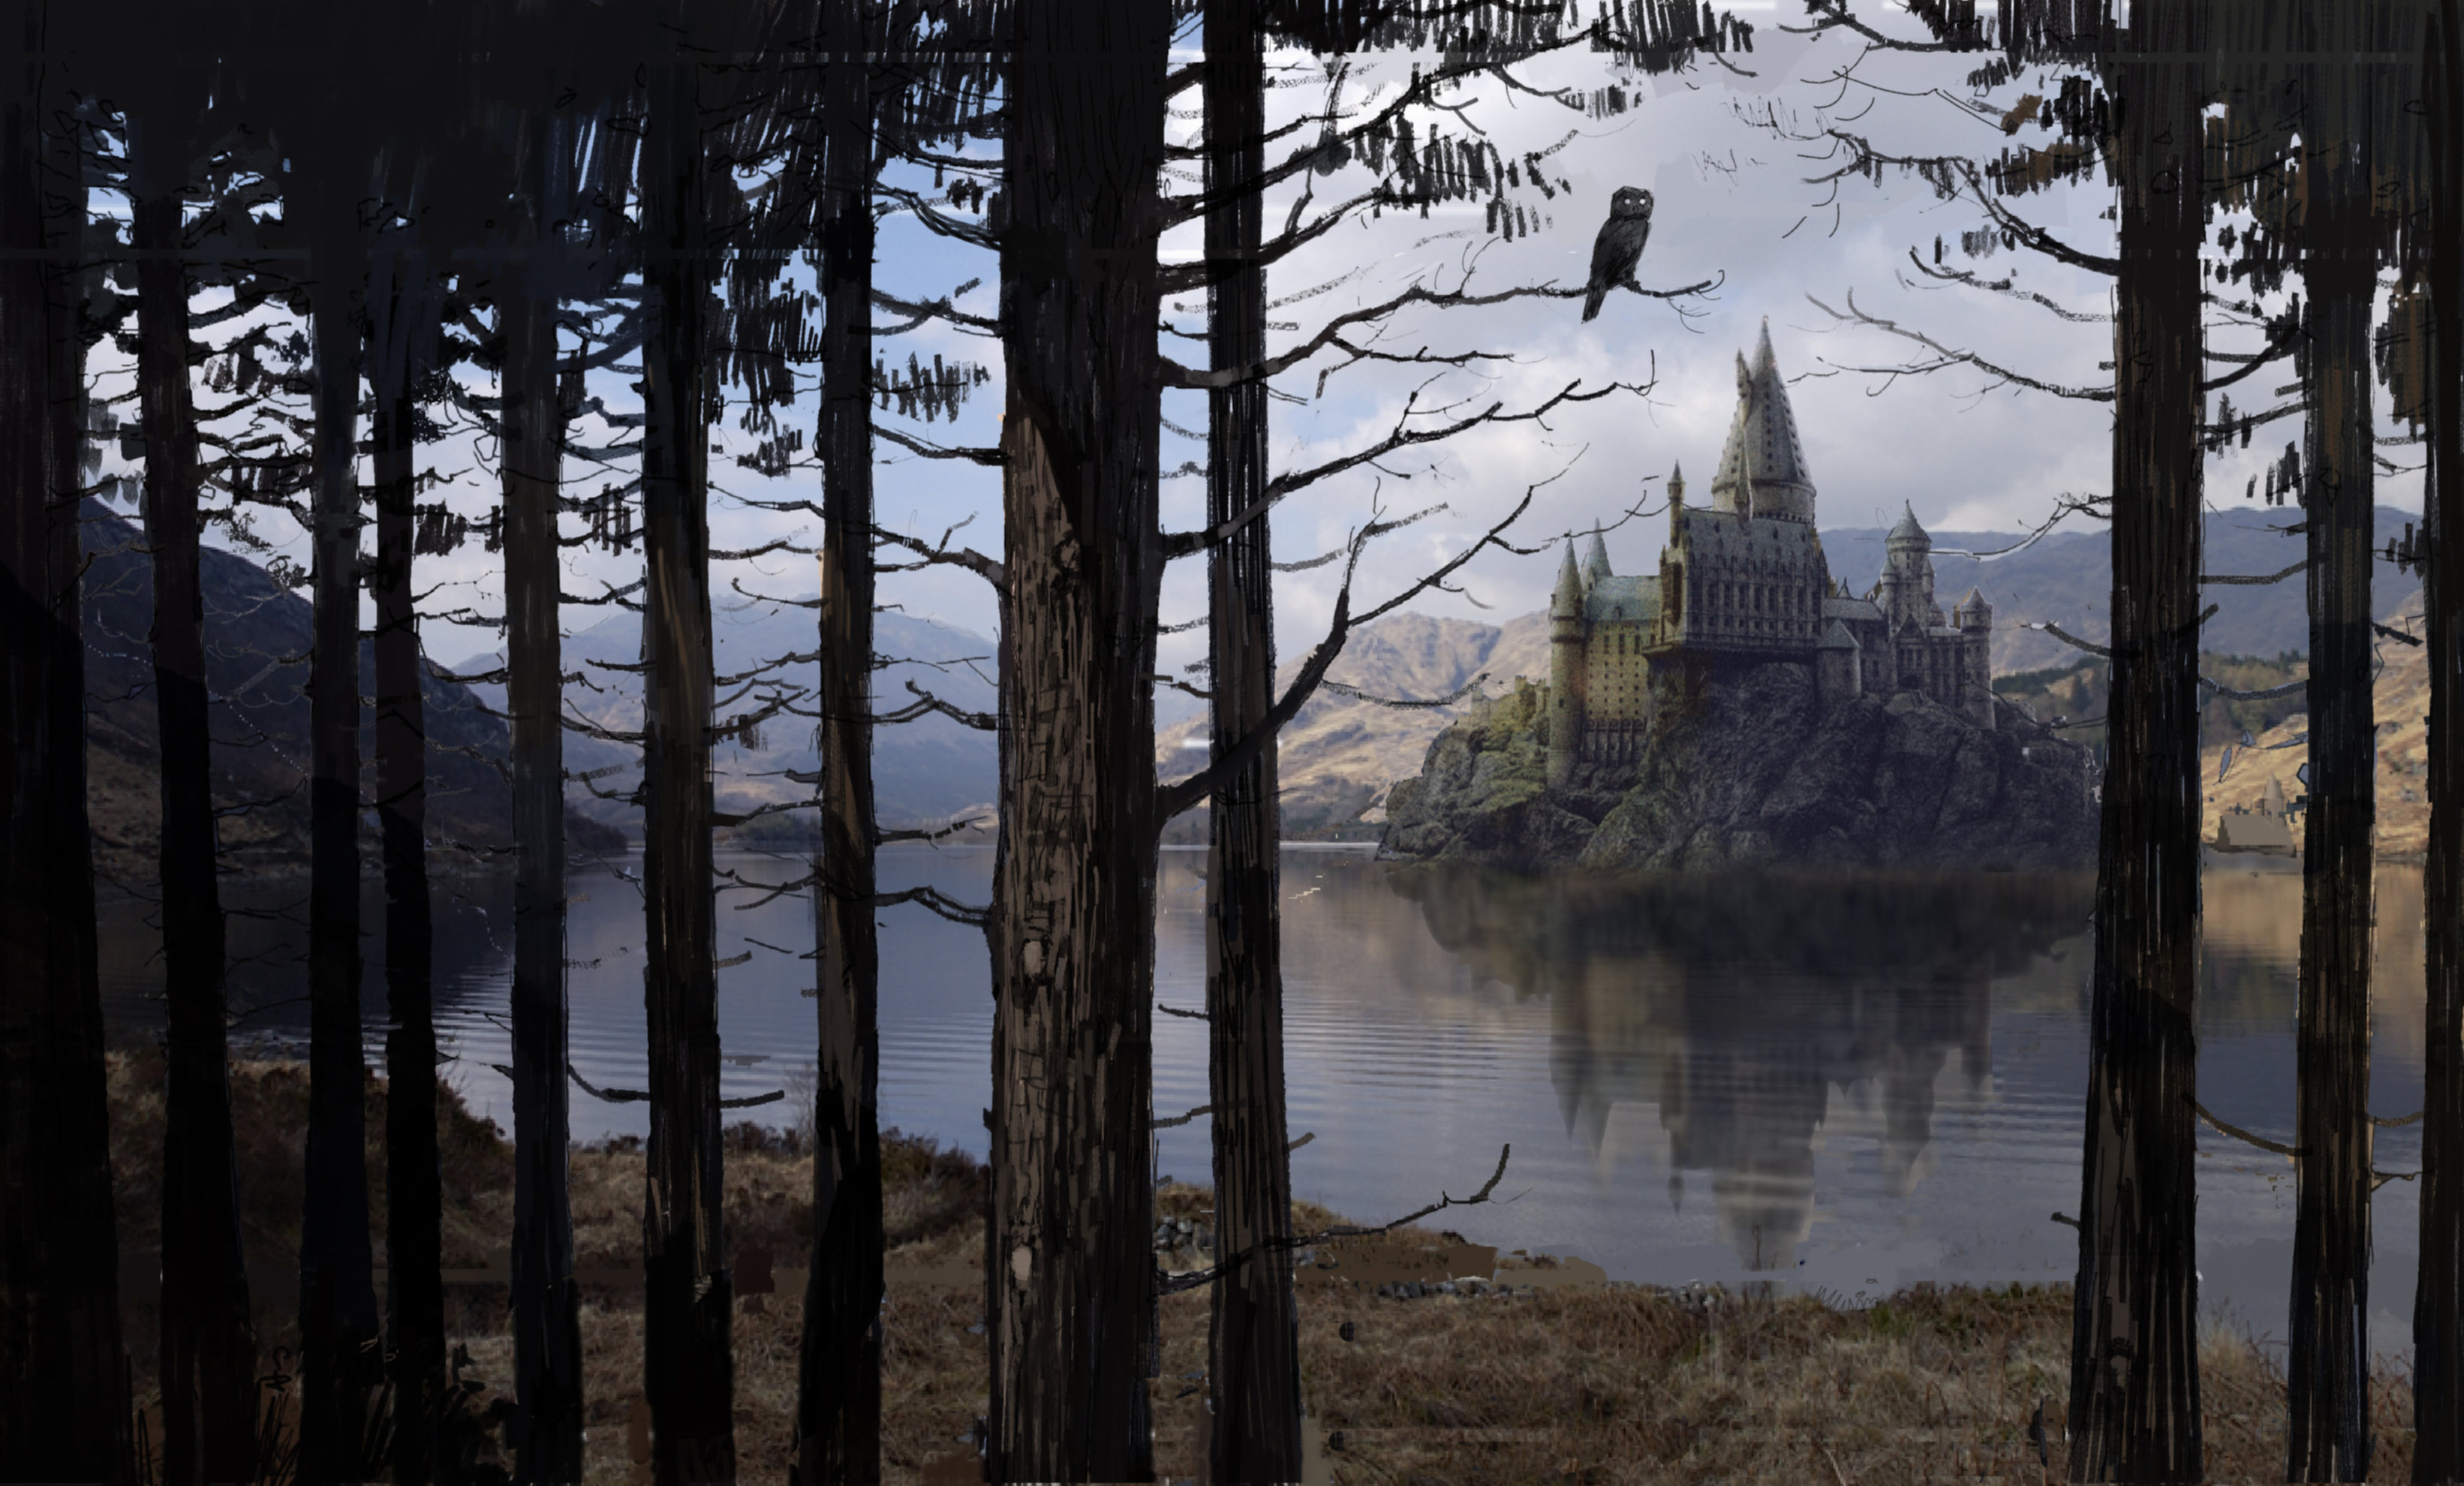 Hogwarts through some trees